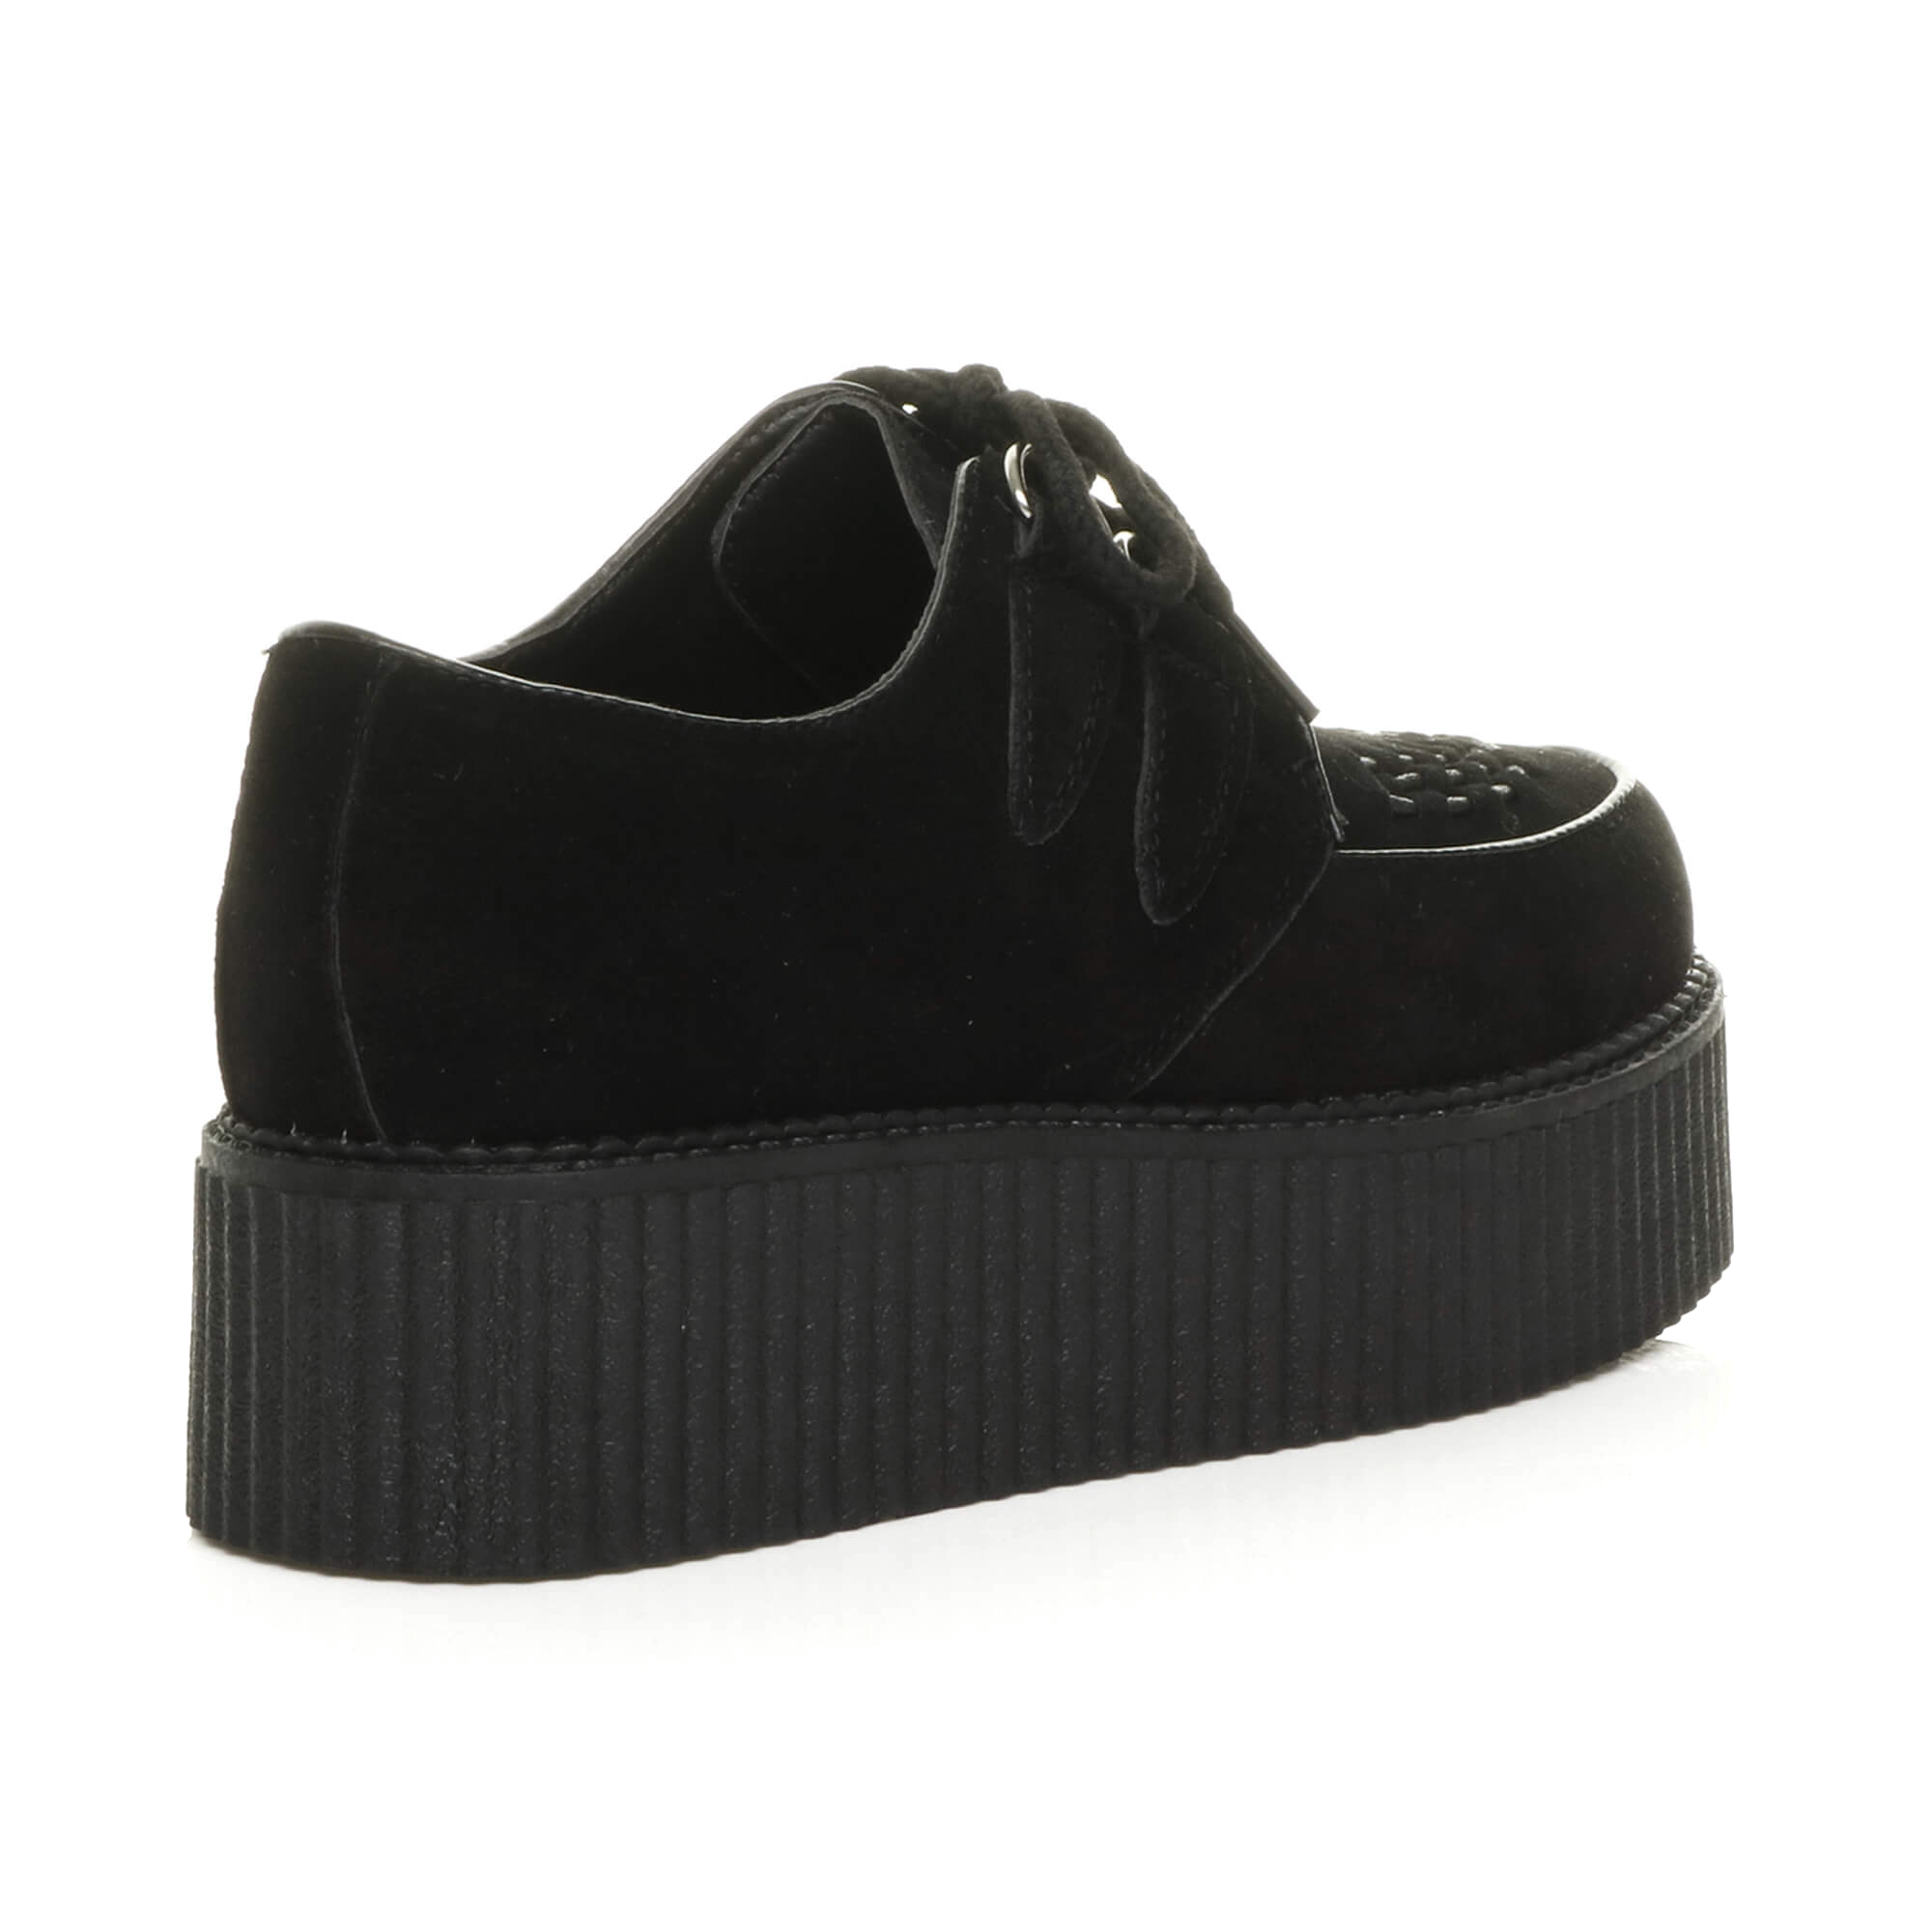 f1cf0d3525d WOMENS LADIES FLAT DOUBLE PLATFORM WEDGE LACE UP PUNK GOTH CREEPERS ...